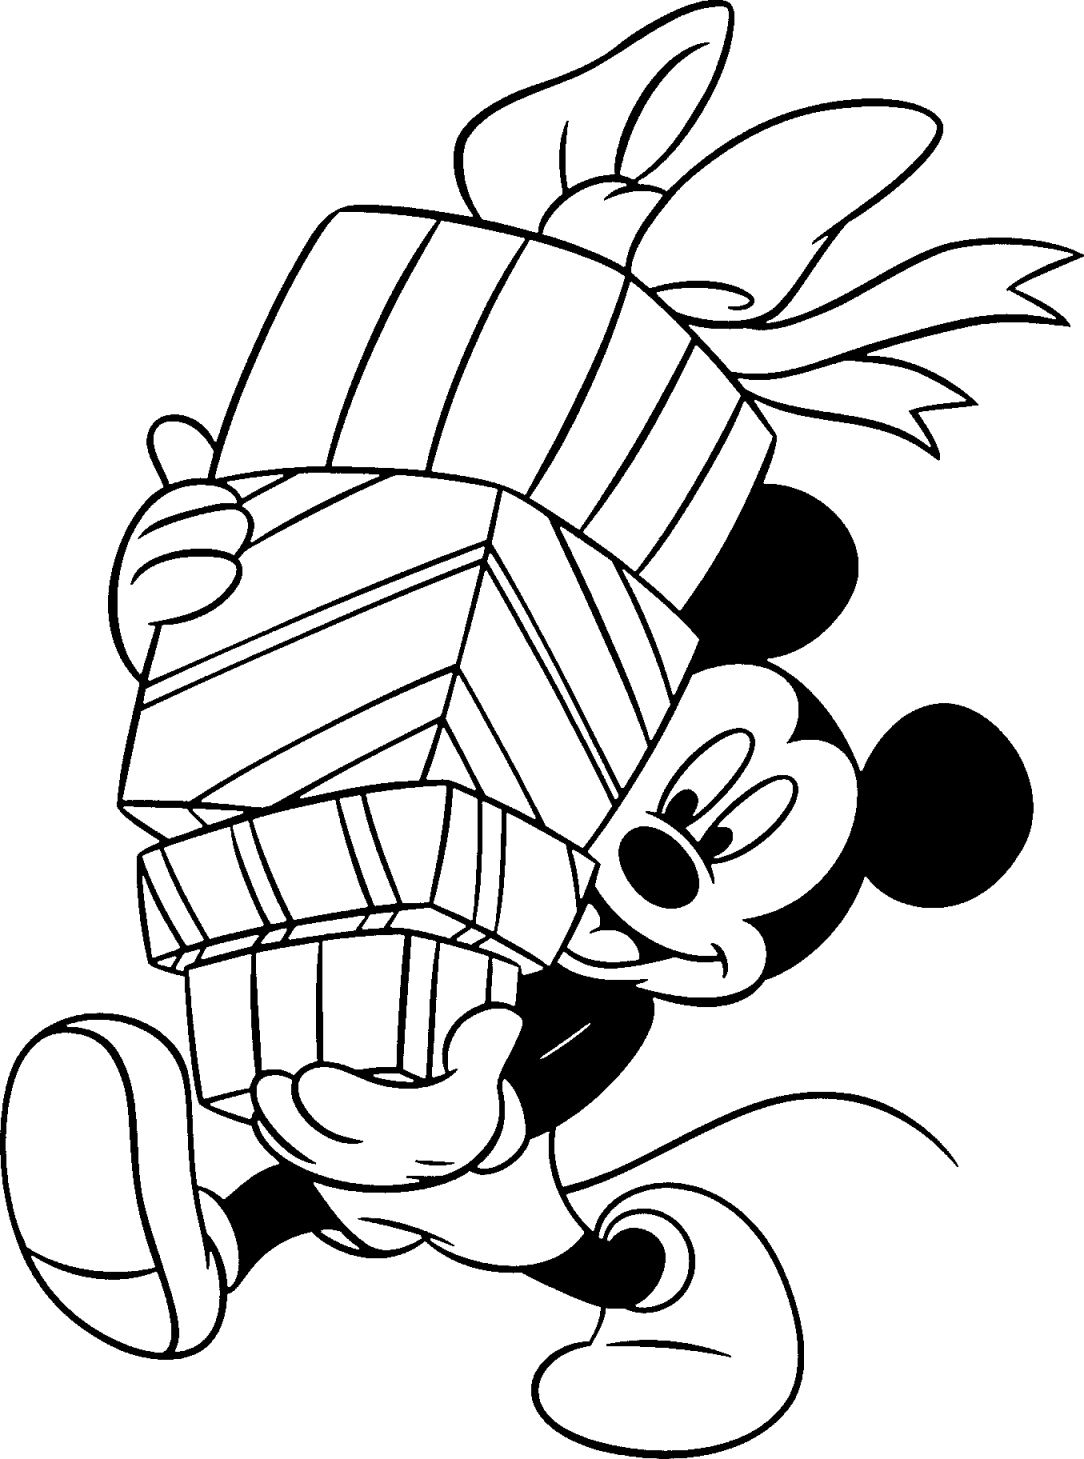 coloring free cartoon coloring pages to download and print for free free coloring